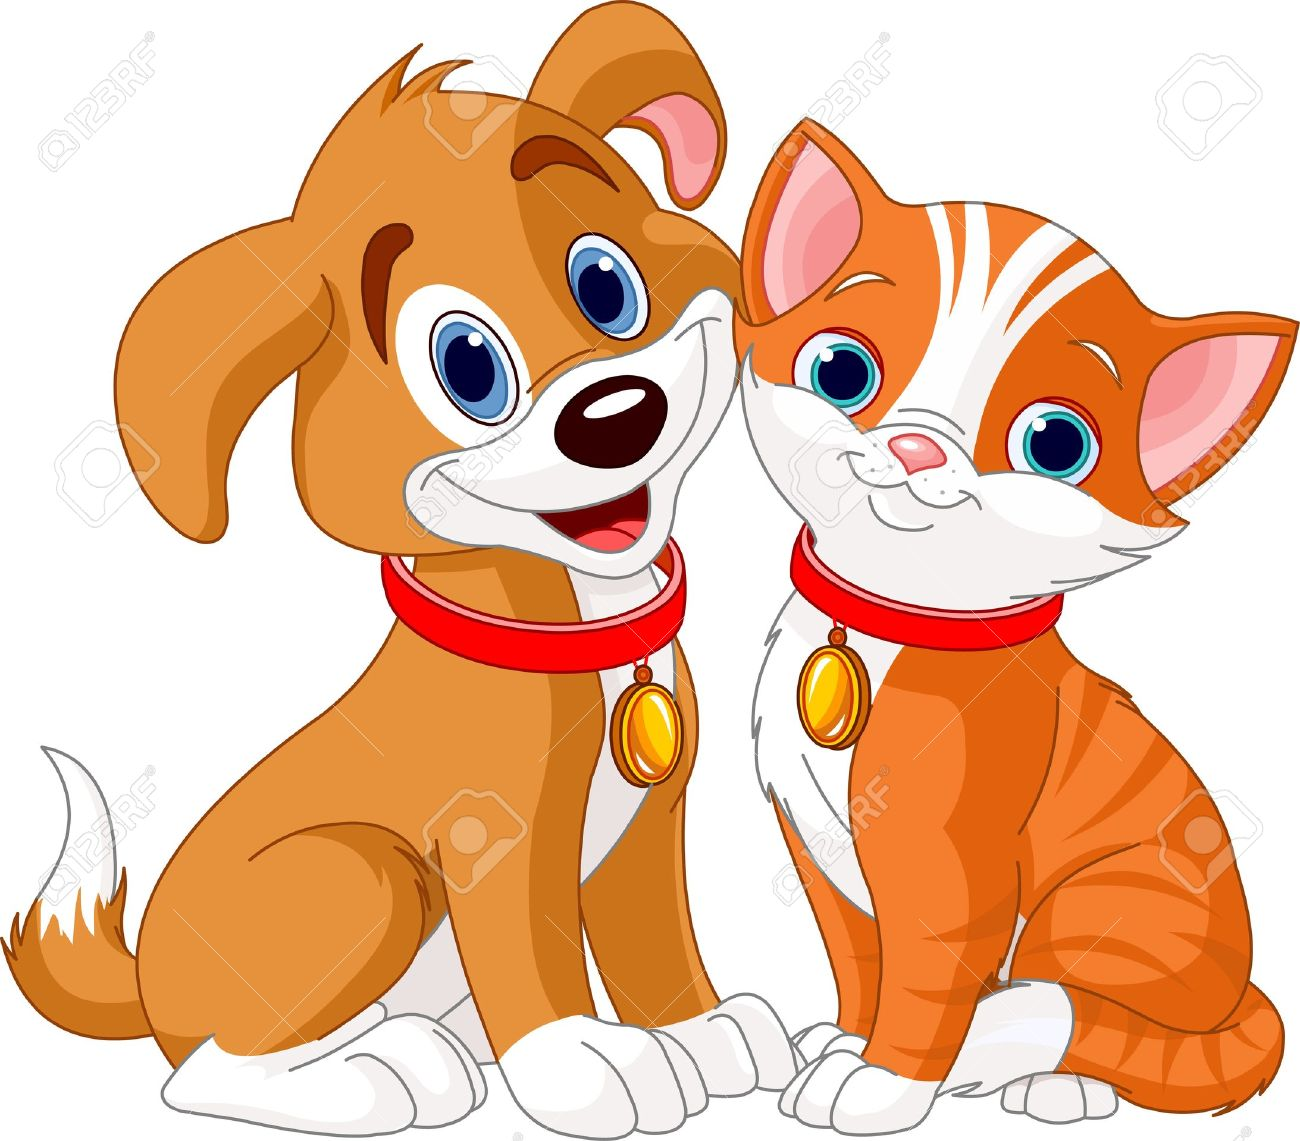 Cat & Dog clipart #19, Download drawings